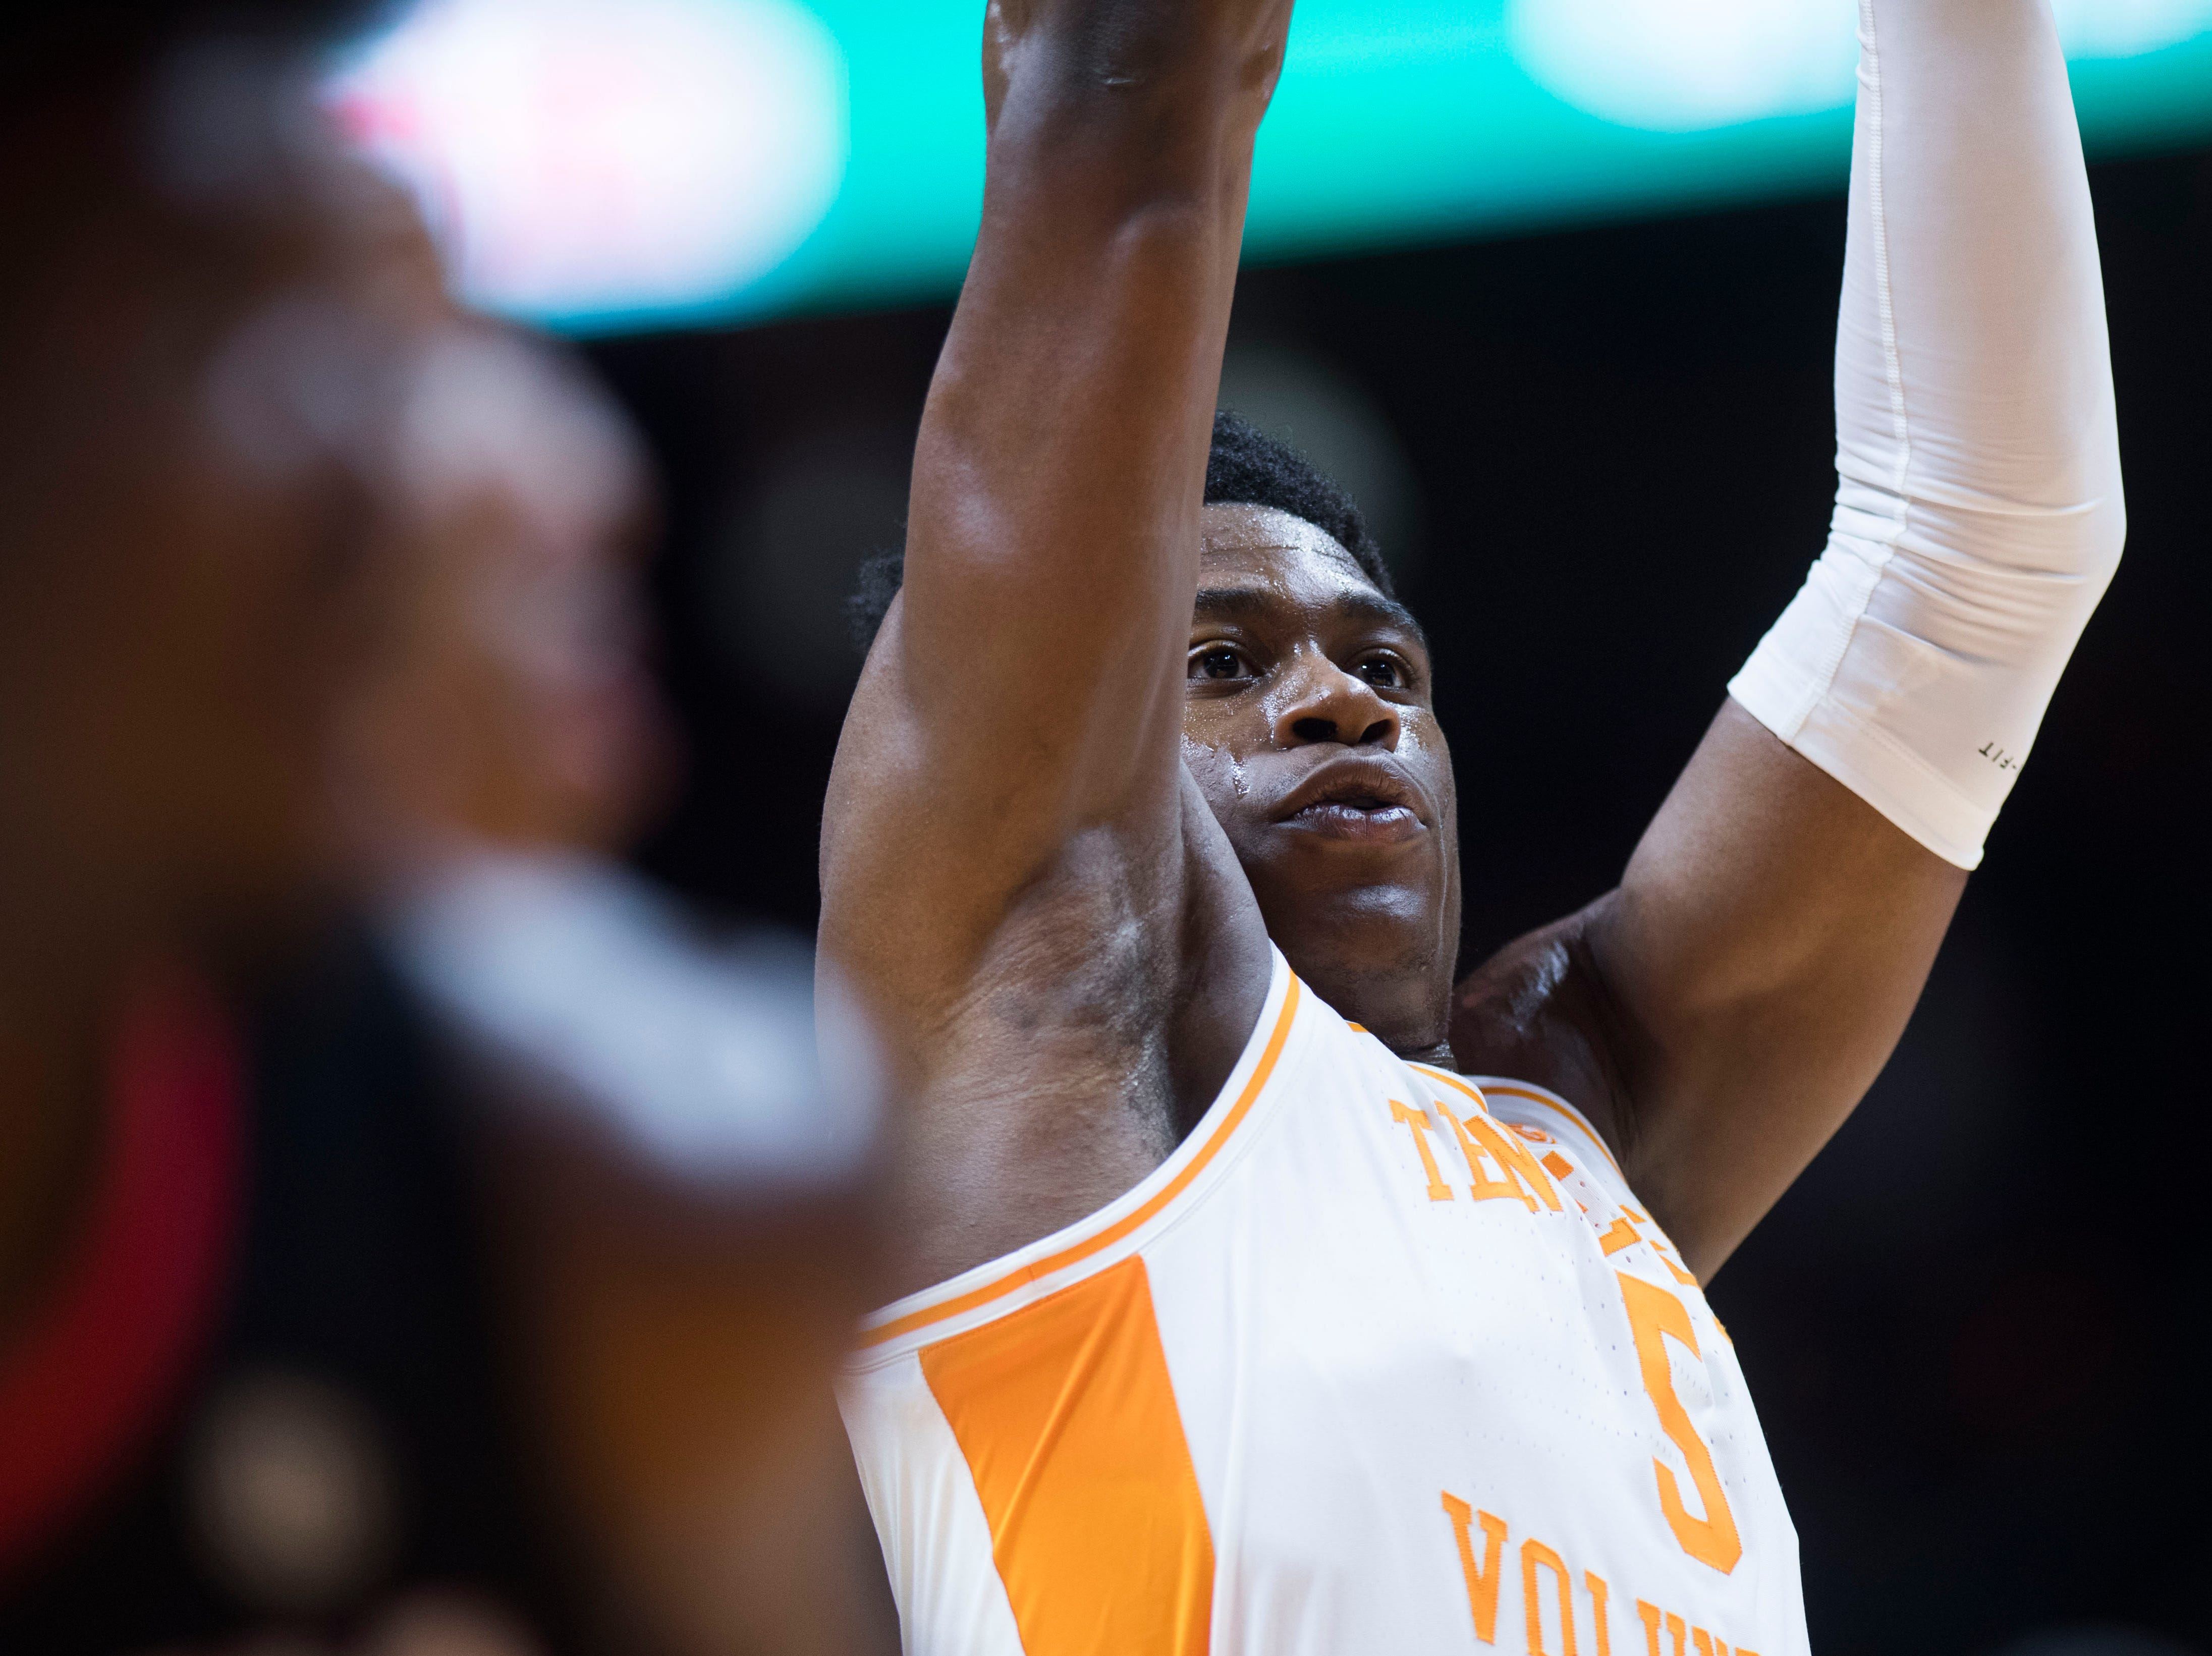 Tennessee's Admiral Schofield (5) takes a foul shot during a college basketball game between Tennessee and Georgia at Thompson-Boling Arena Saturday, Jan. 5, 2019.